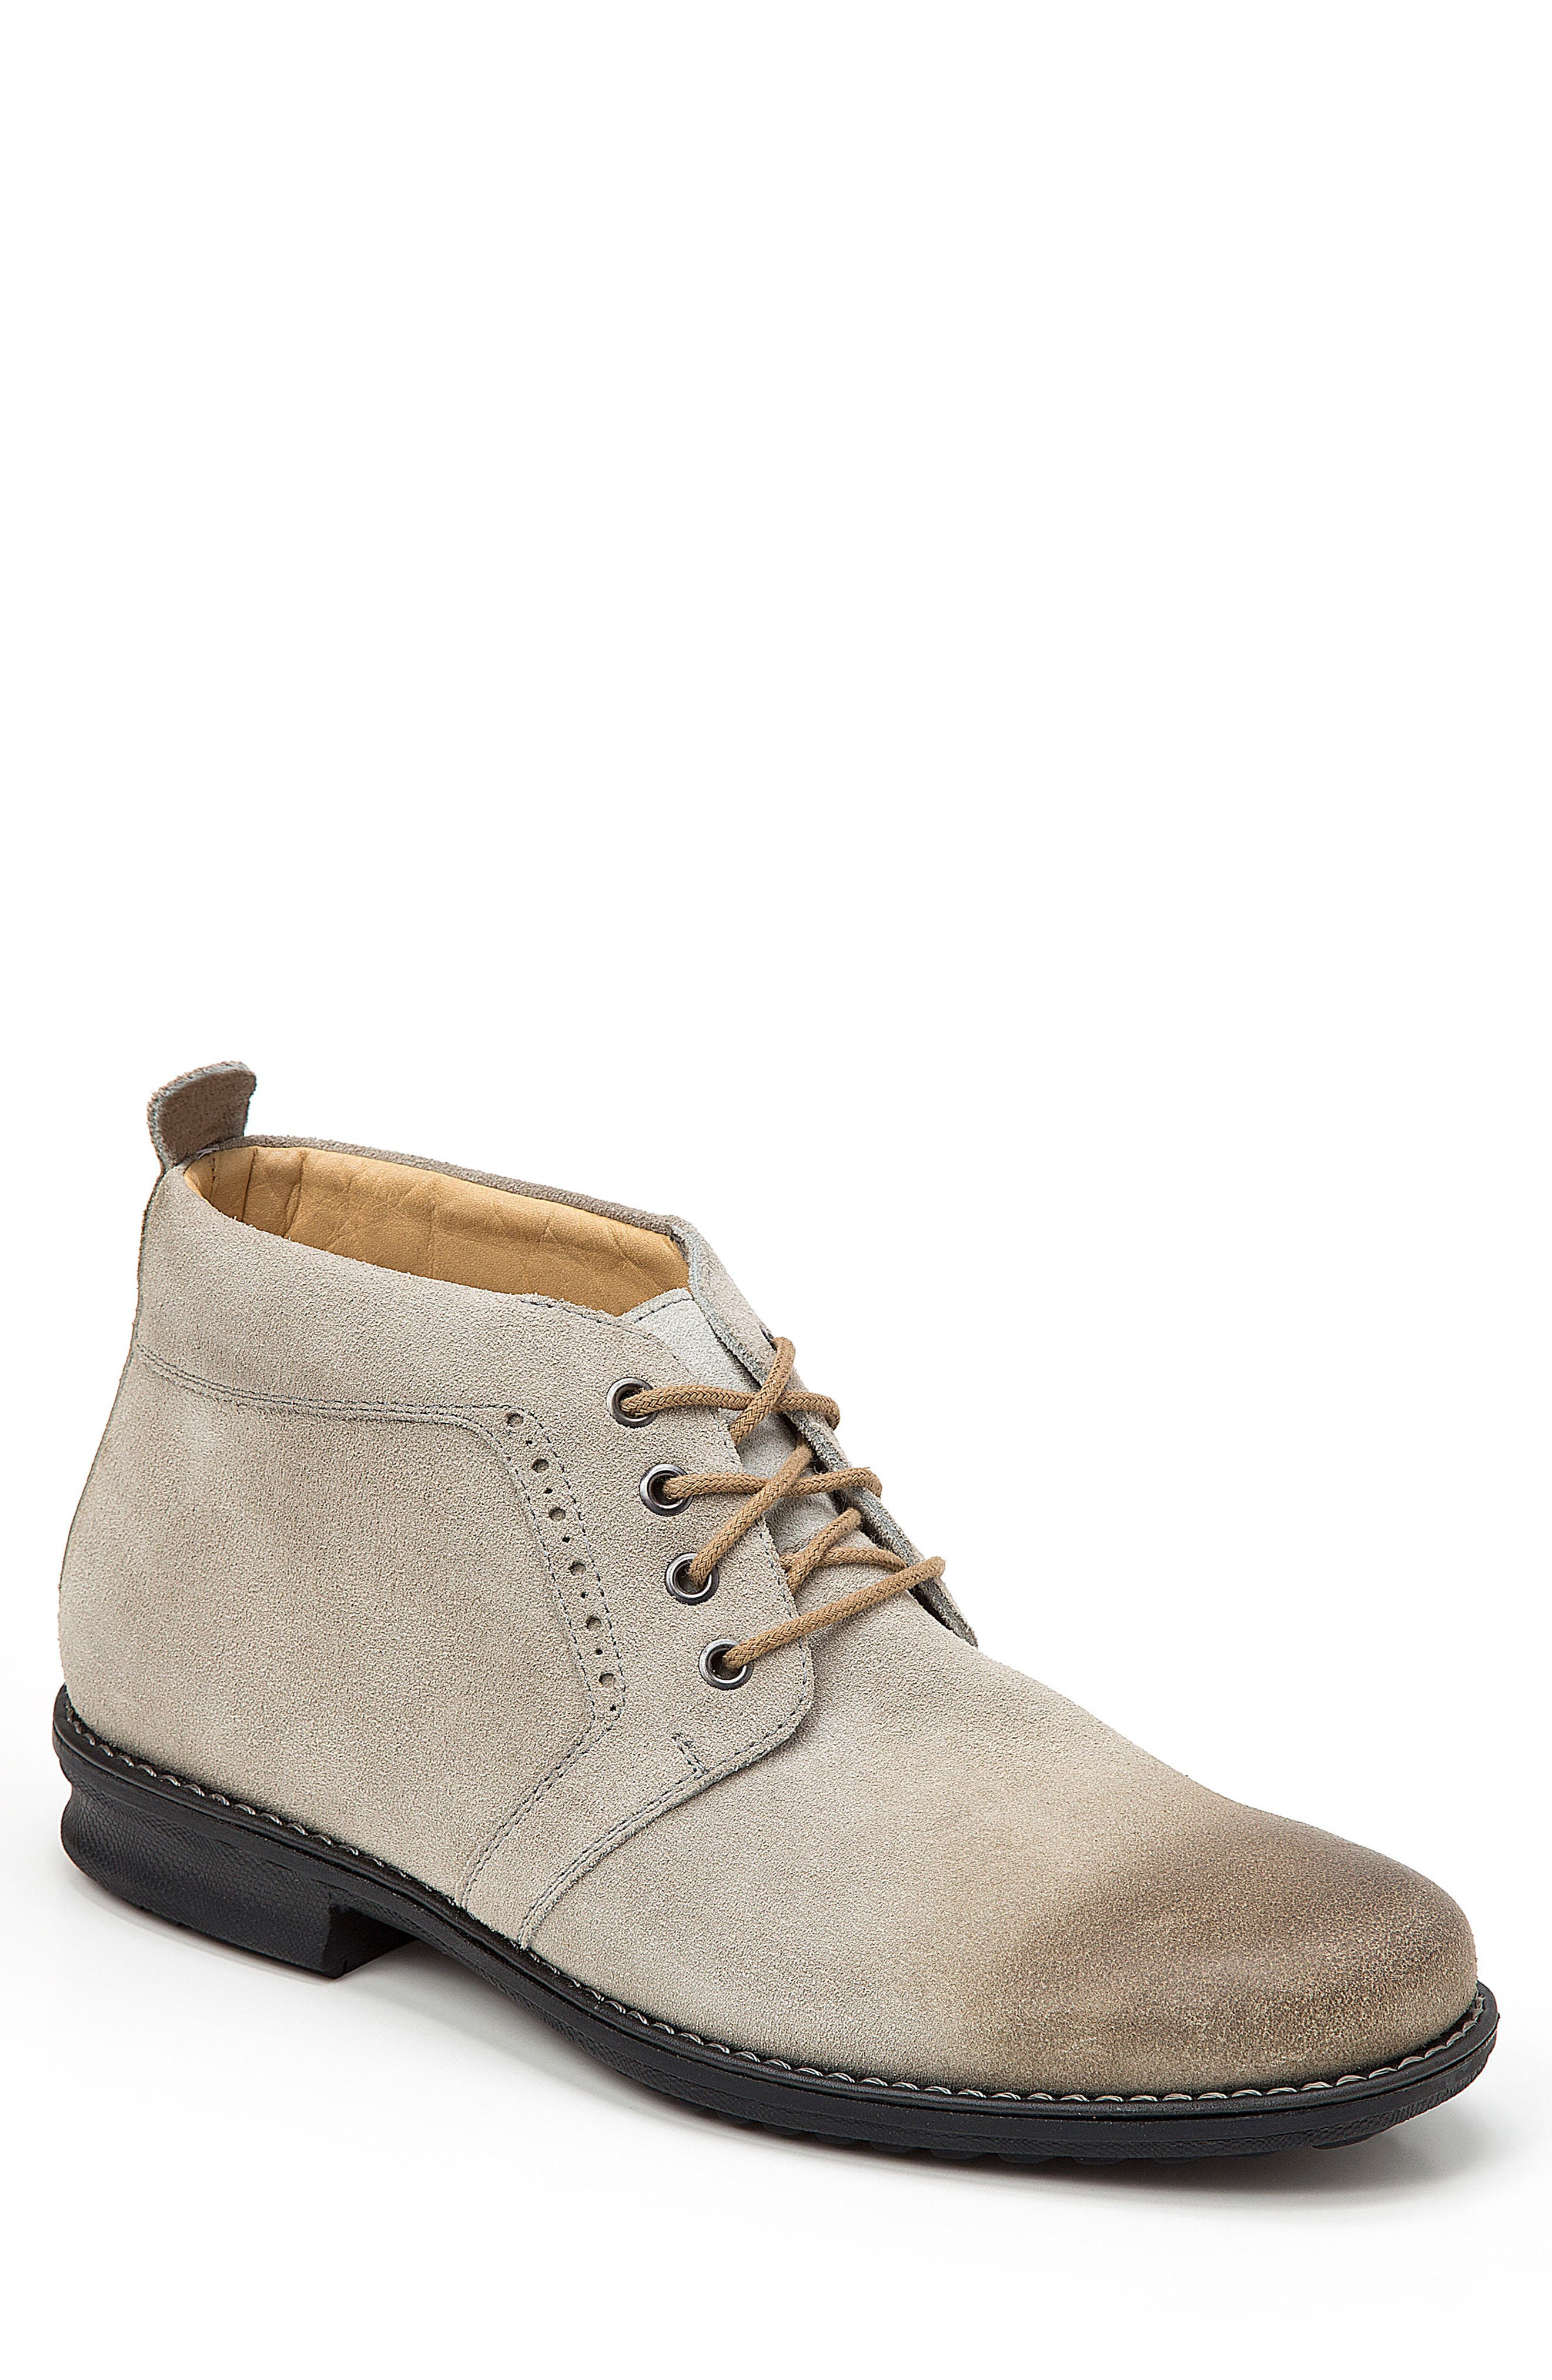 Chukka Boot,                             Main thumbnail 1, color,                             GREY